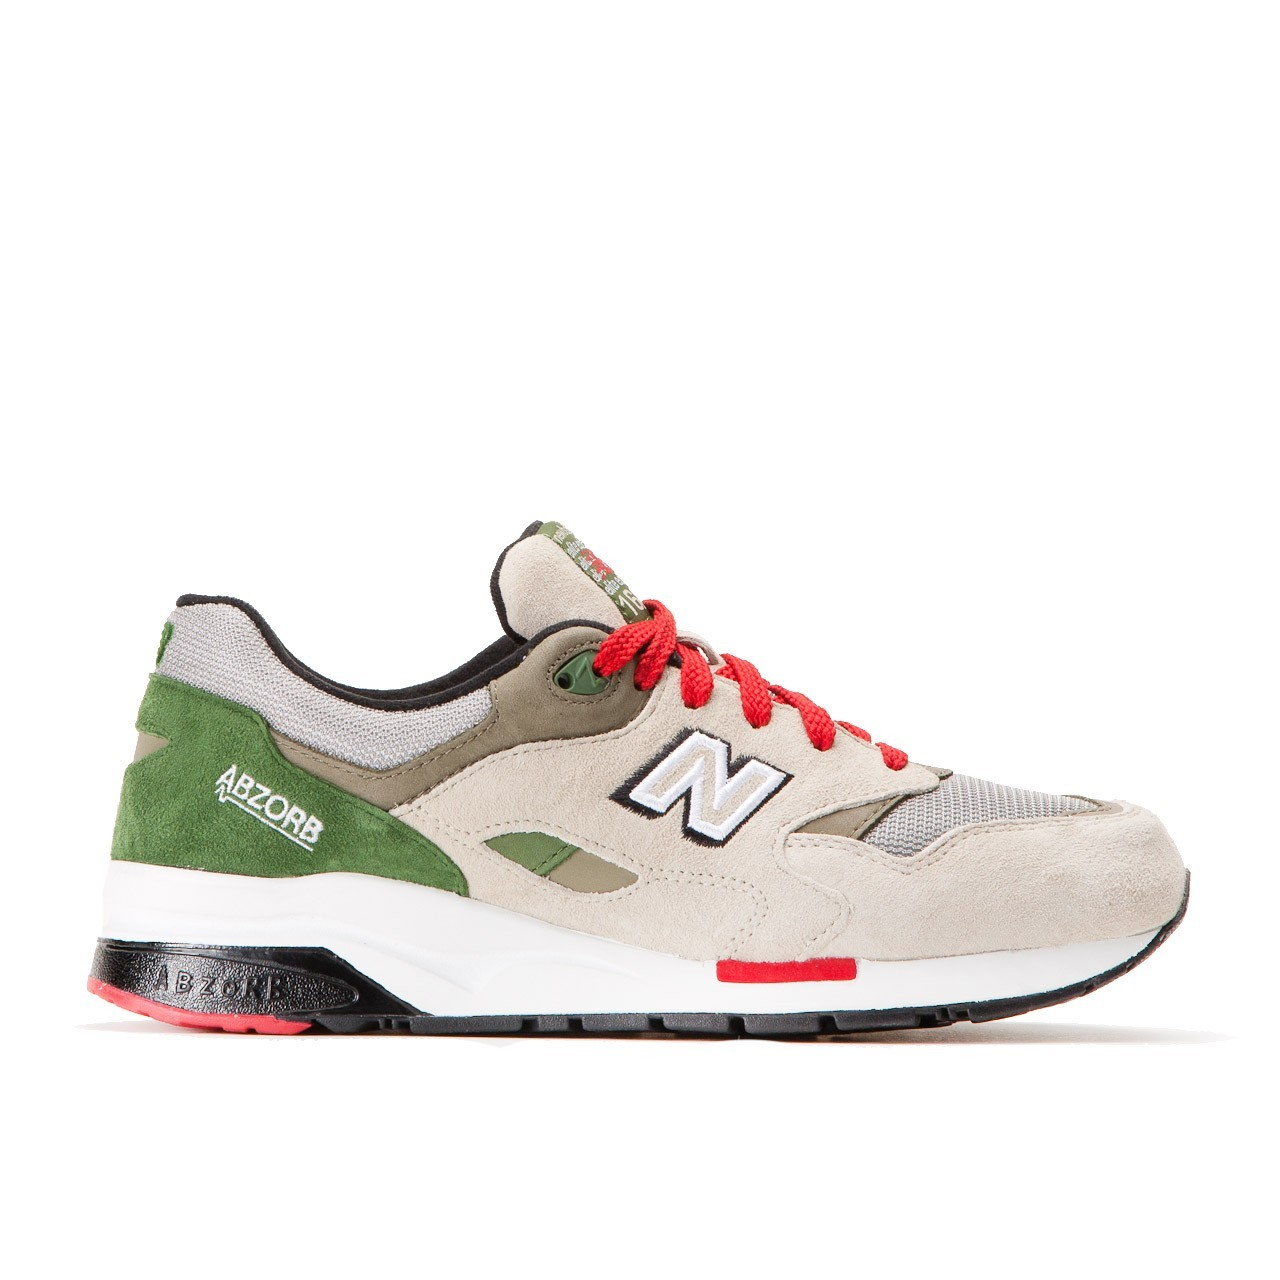 sports shoes b5ea3 abaaa Outlet Sale Men's New Balance CM 1600 GR Shoes Grey / Green ...